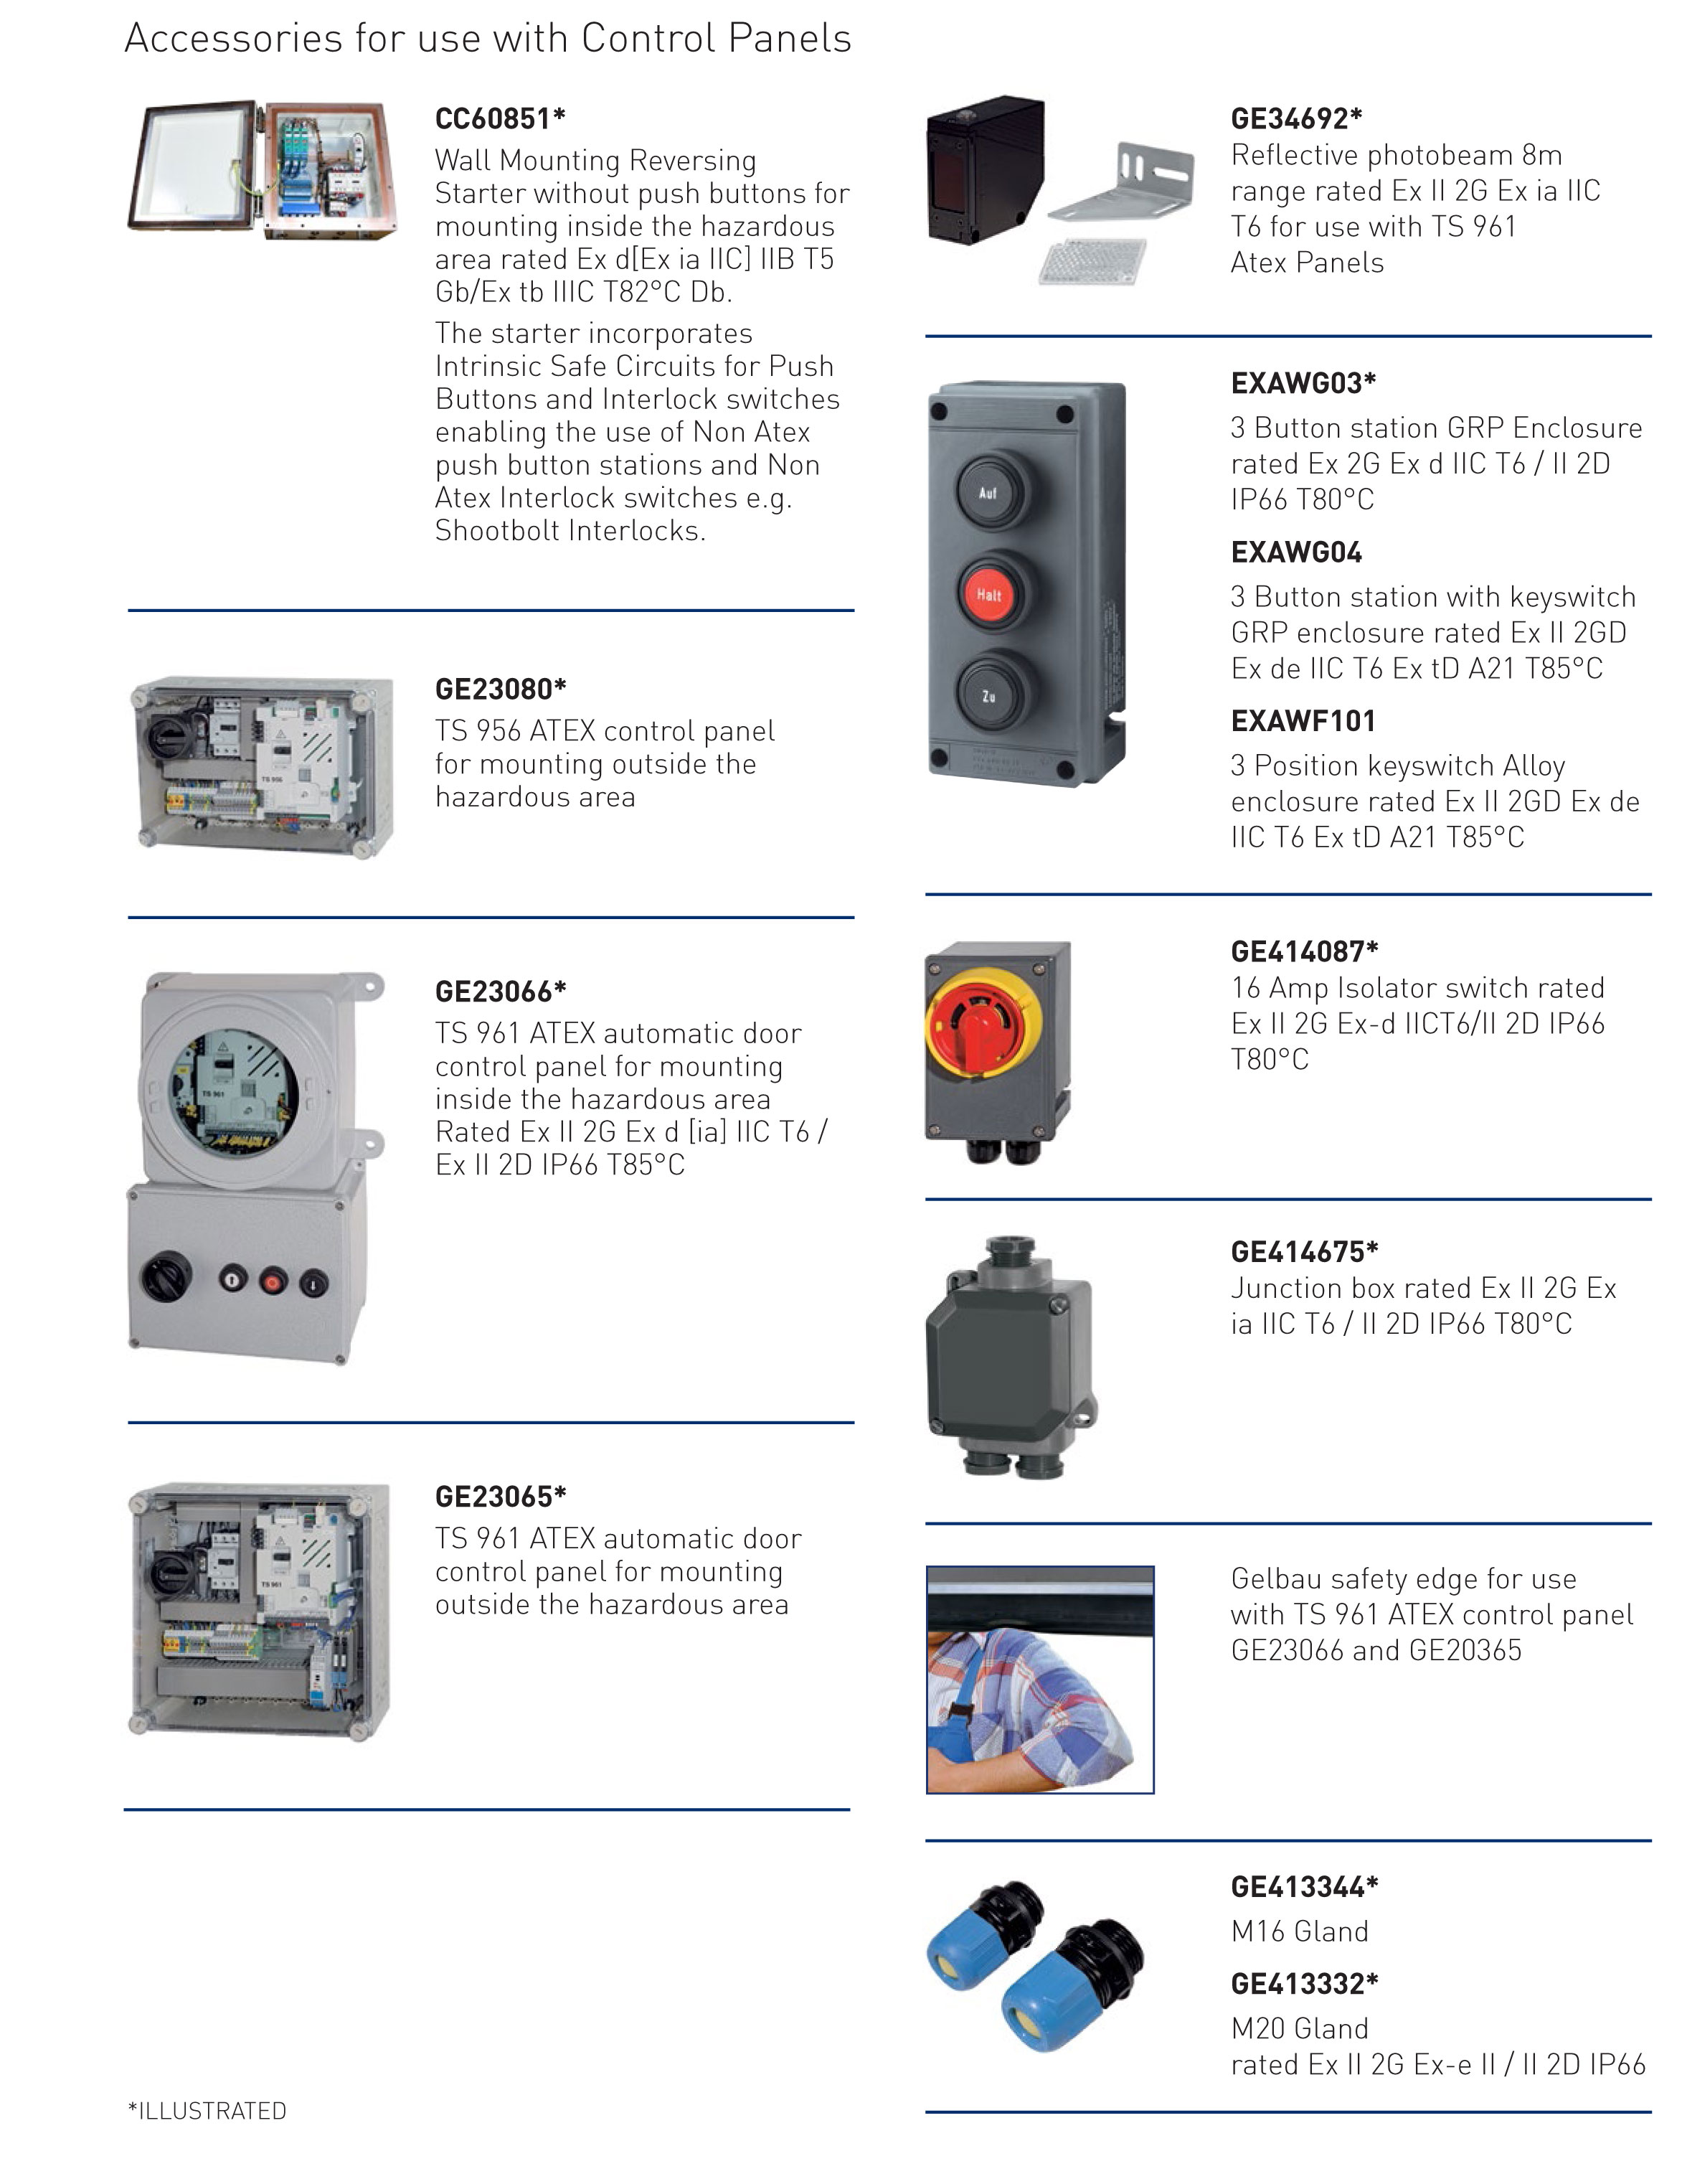 Atex Shutter Motors Security Direct Panel Mounted Push On Hazard Switch Horizontal Or Vertical Mounting Hollow Shaft Worm Drive Gear Box With Limit Switches Controls Available For Normal And Auto Operation